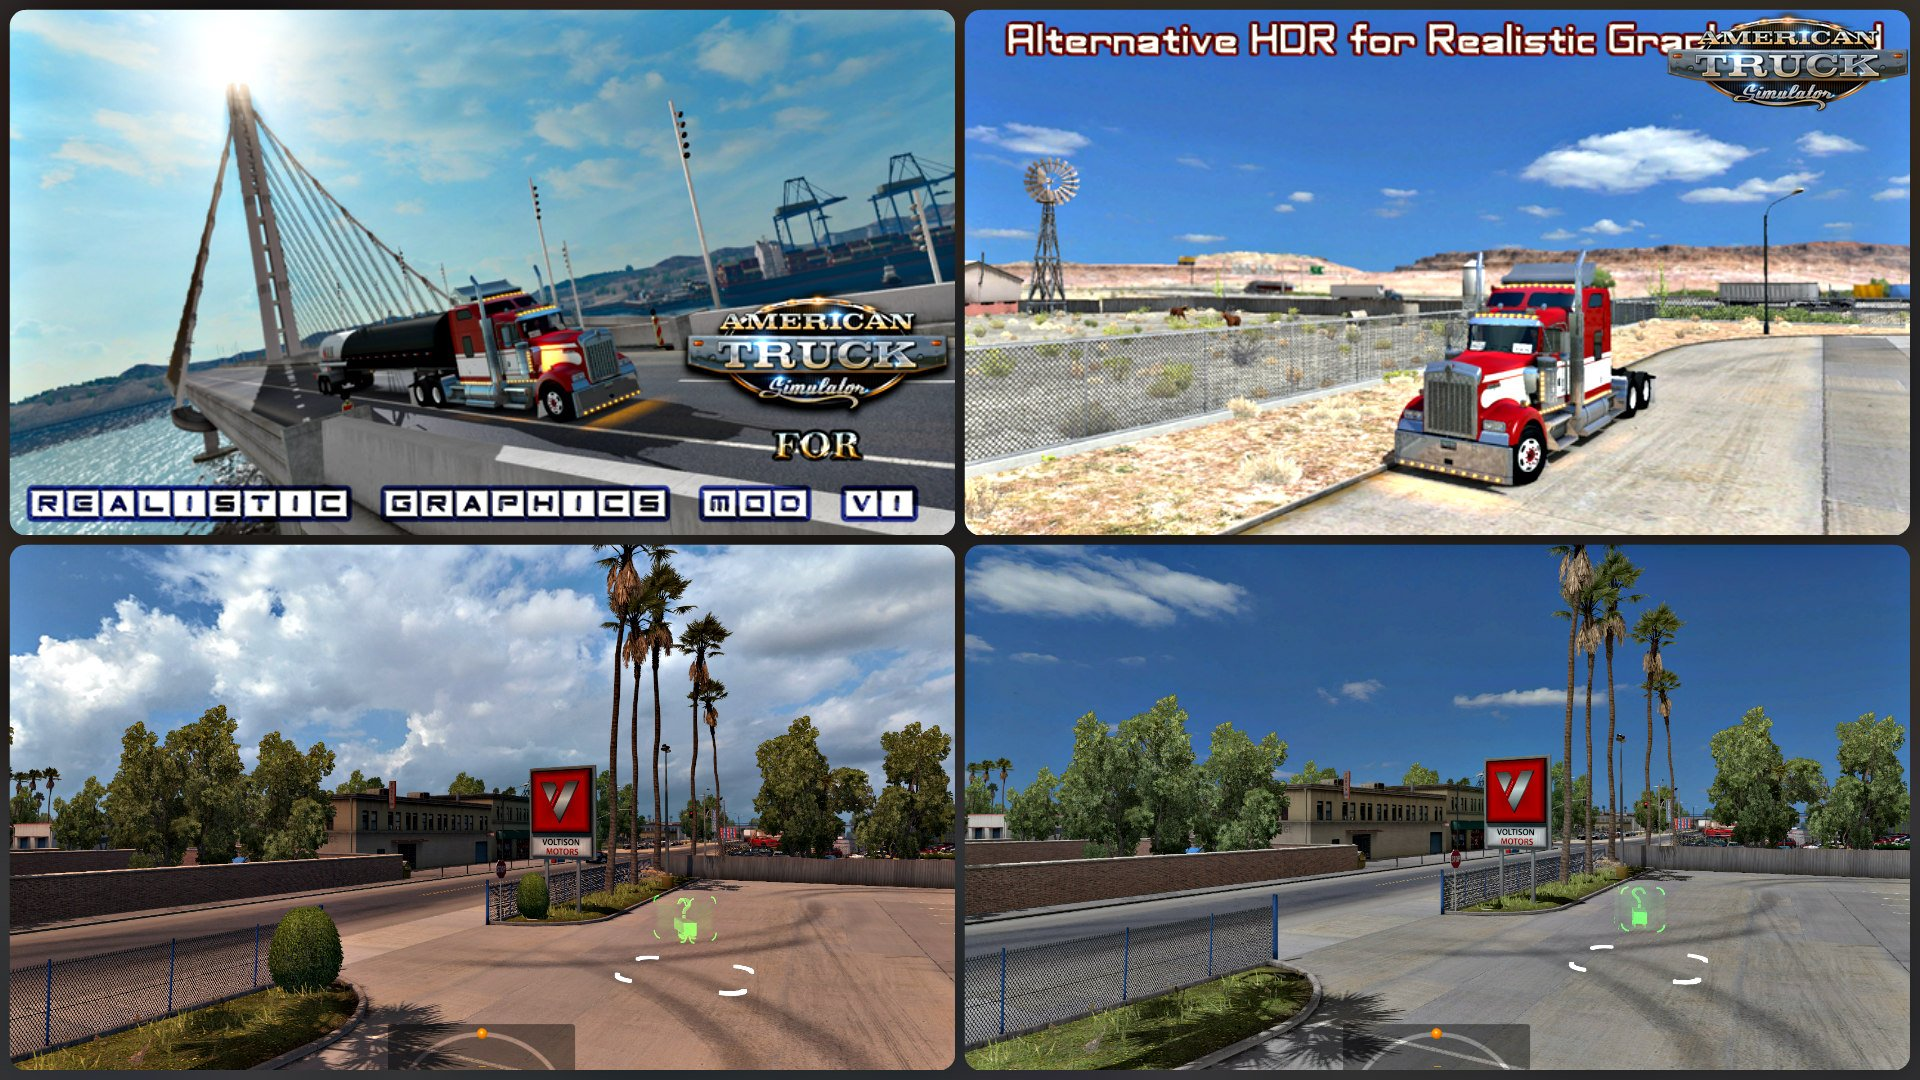 Realistic Graphics Mod v1.4 + Alternative HDR for Realistics Graphics Mod (v1.4.x) for ATS